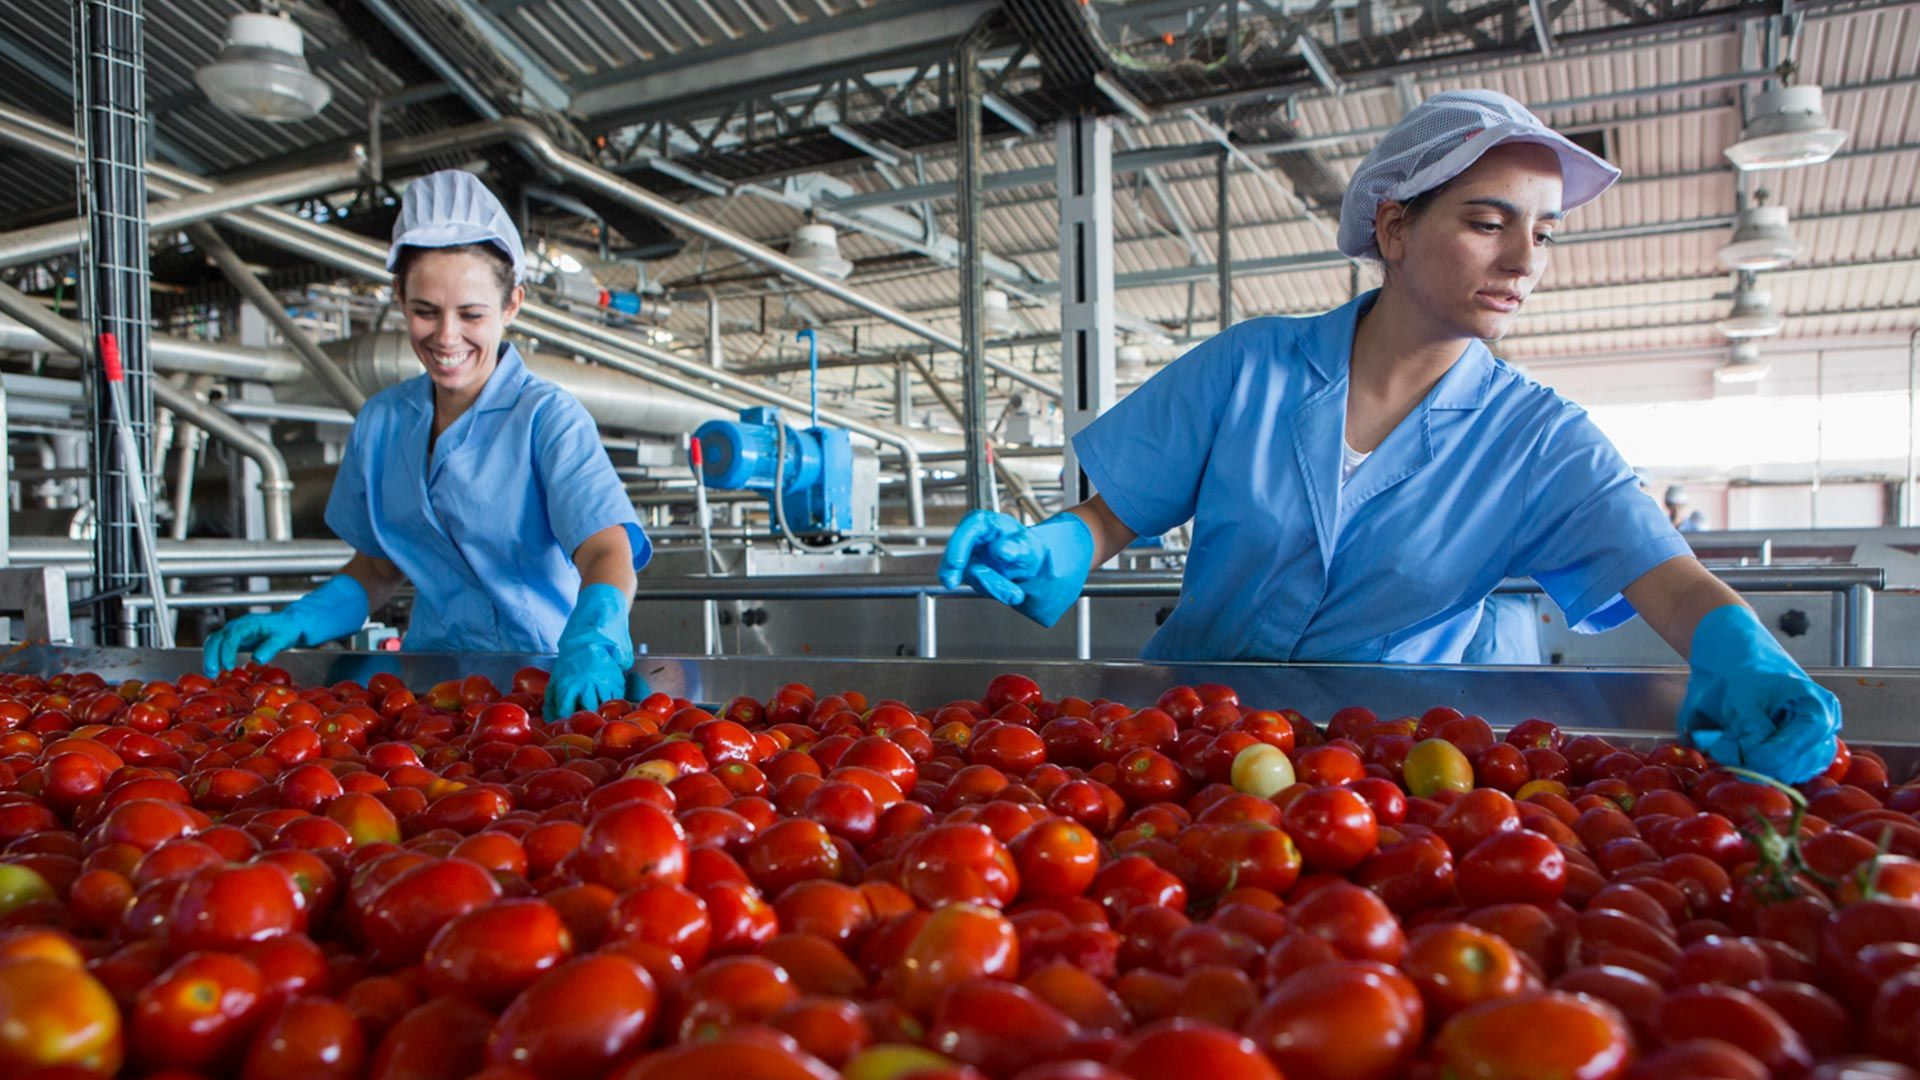 Two women in work overalls sort tomatoes on a factory production line